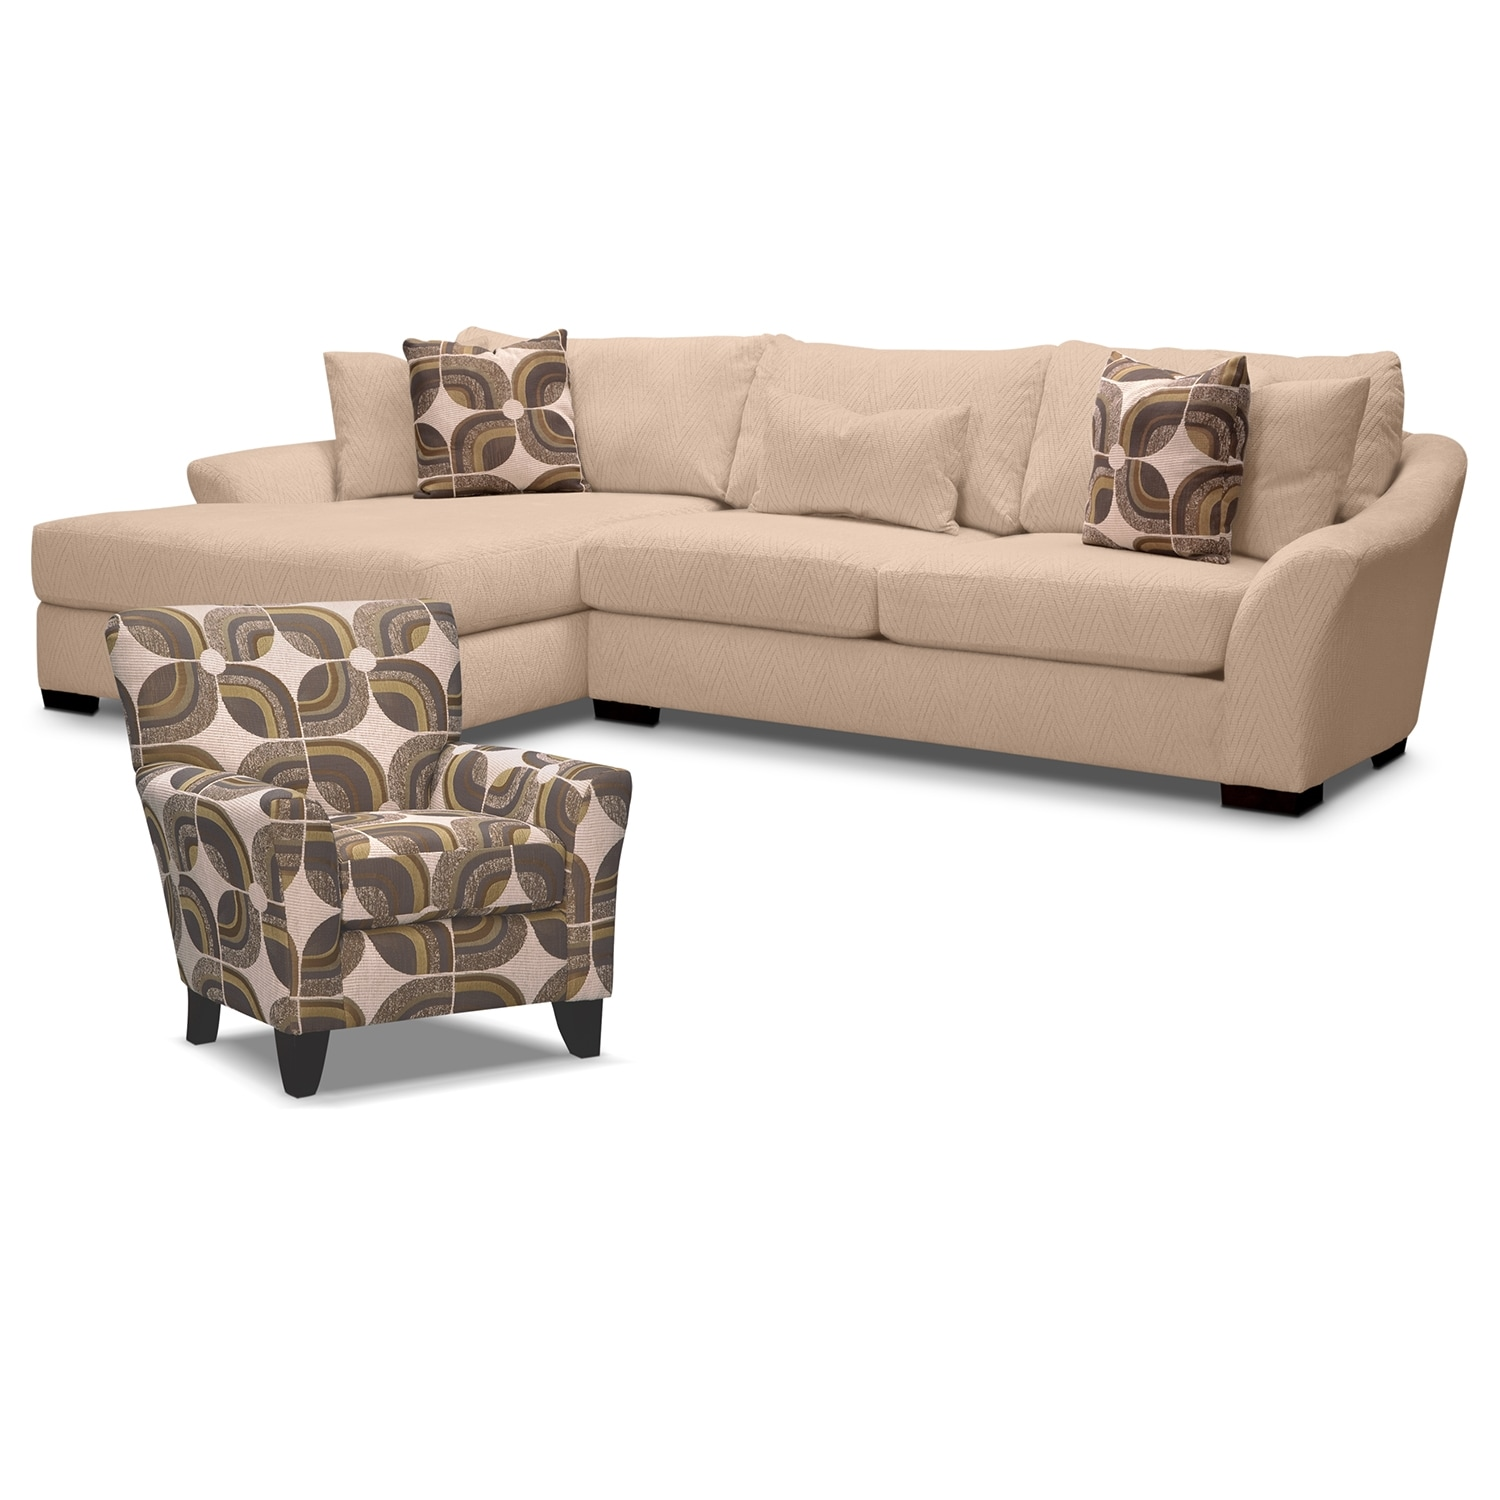 Living Room Furniture - Oasis II 2 Pc. Sectional and Accent Chair